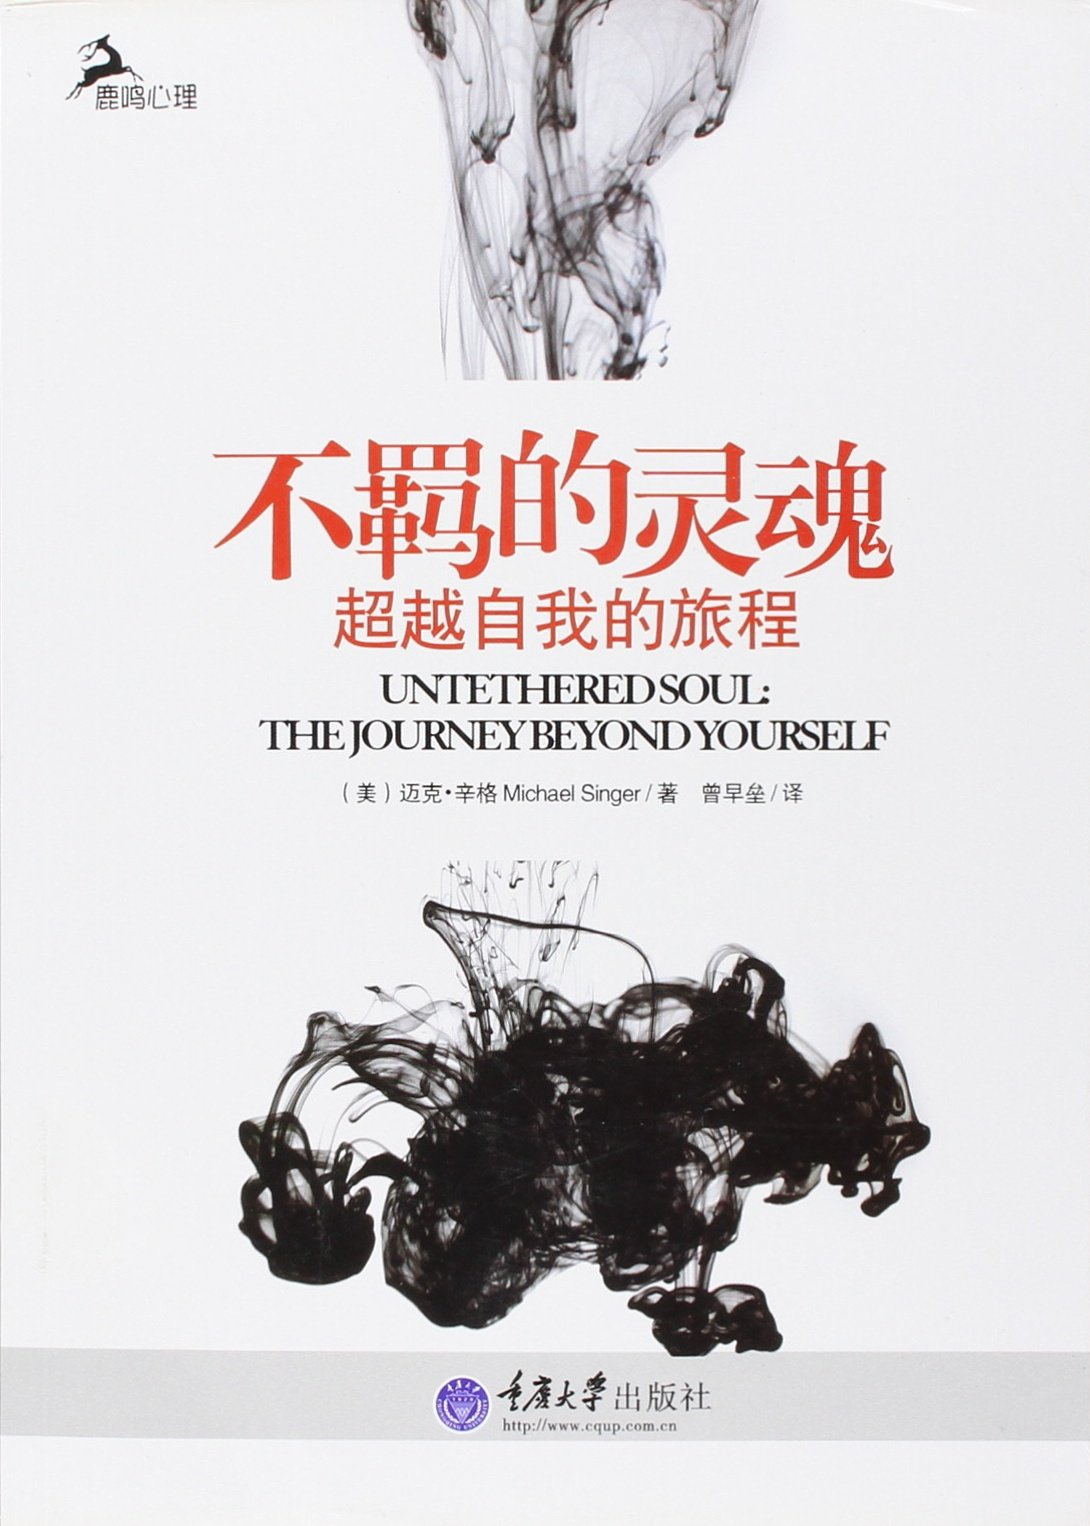 Read Online The Untethered Soul:The Journey beyond Yourself (Chinese Edition) PDF